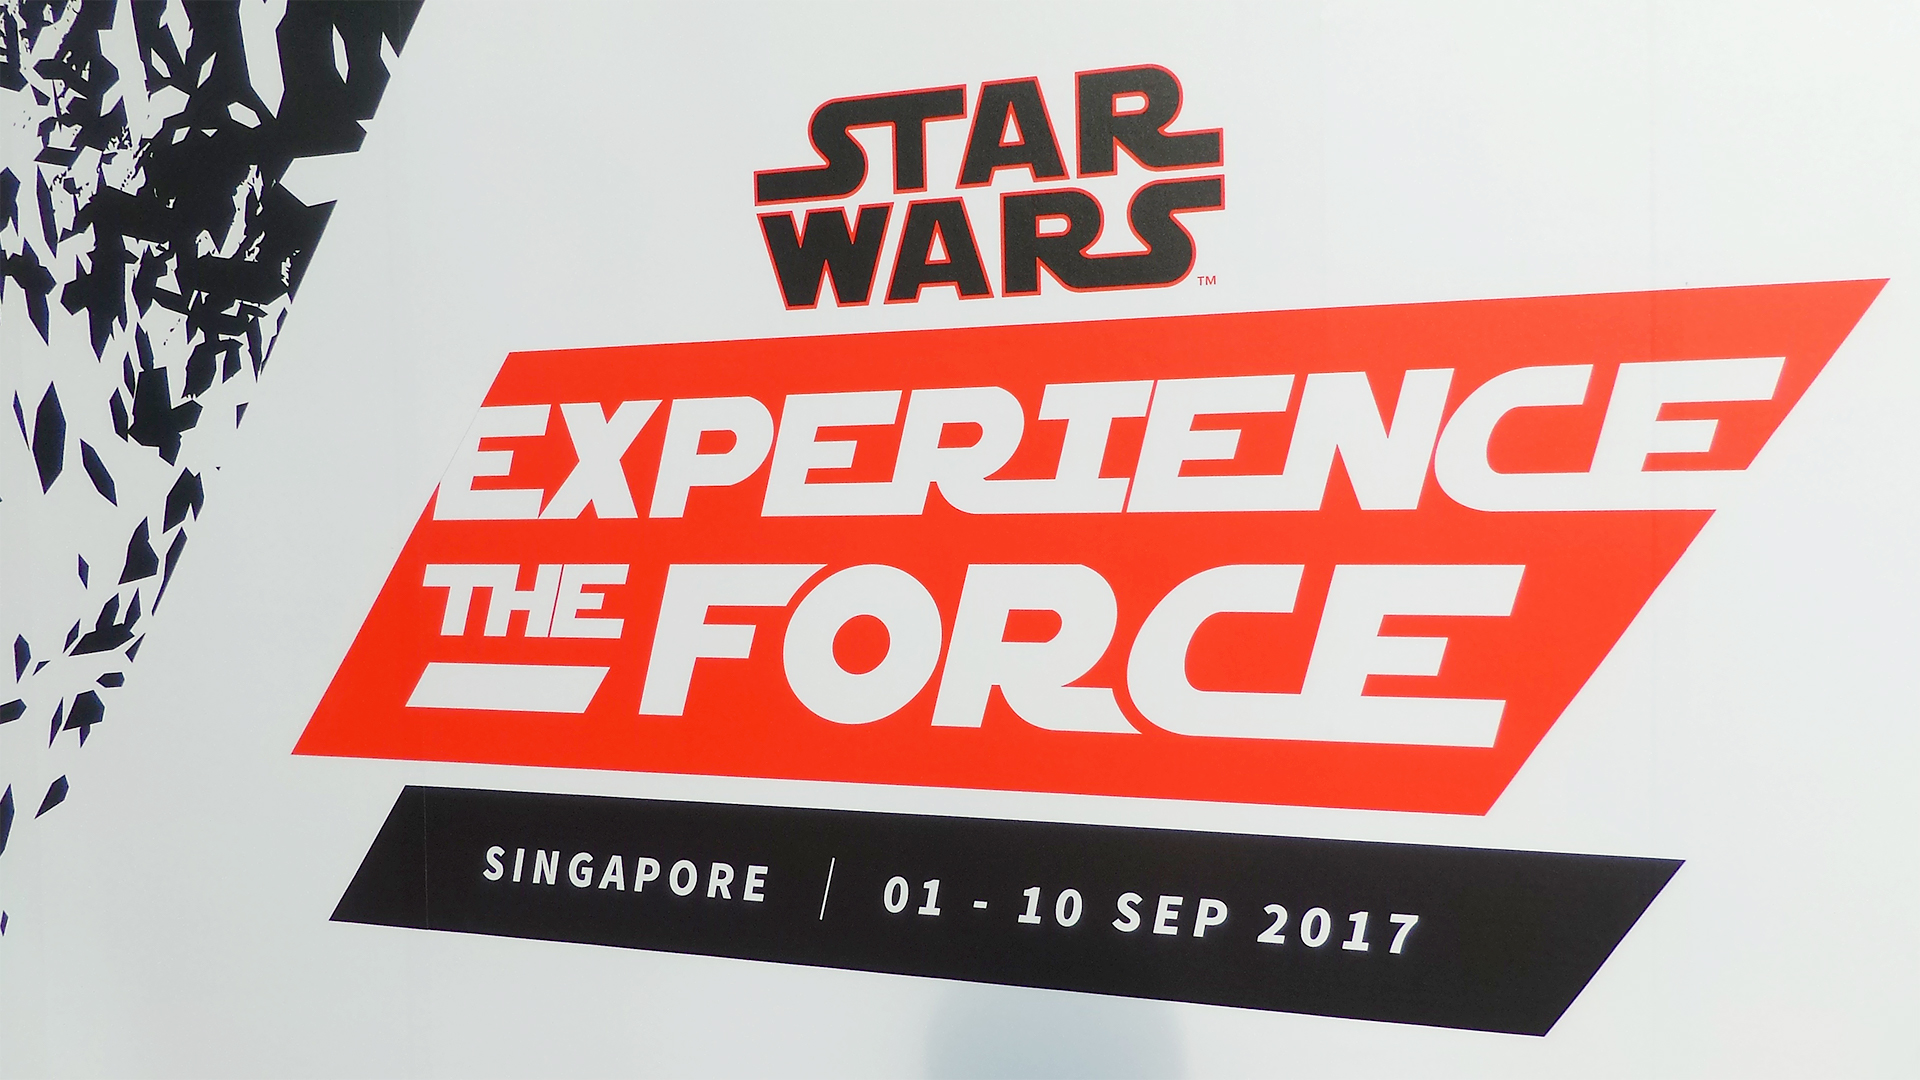 star wars experience the force signapore - logo